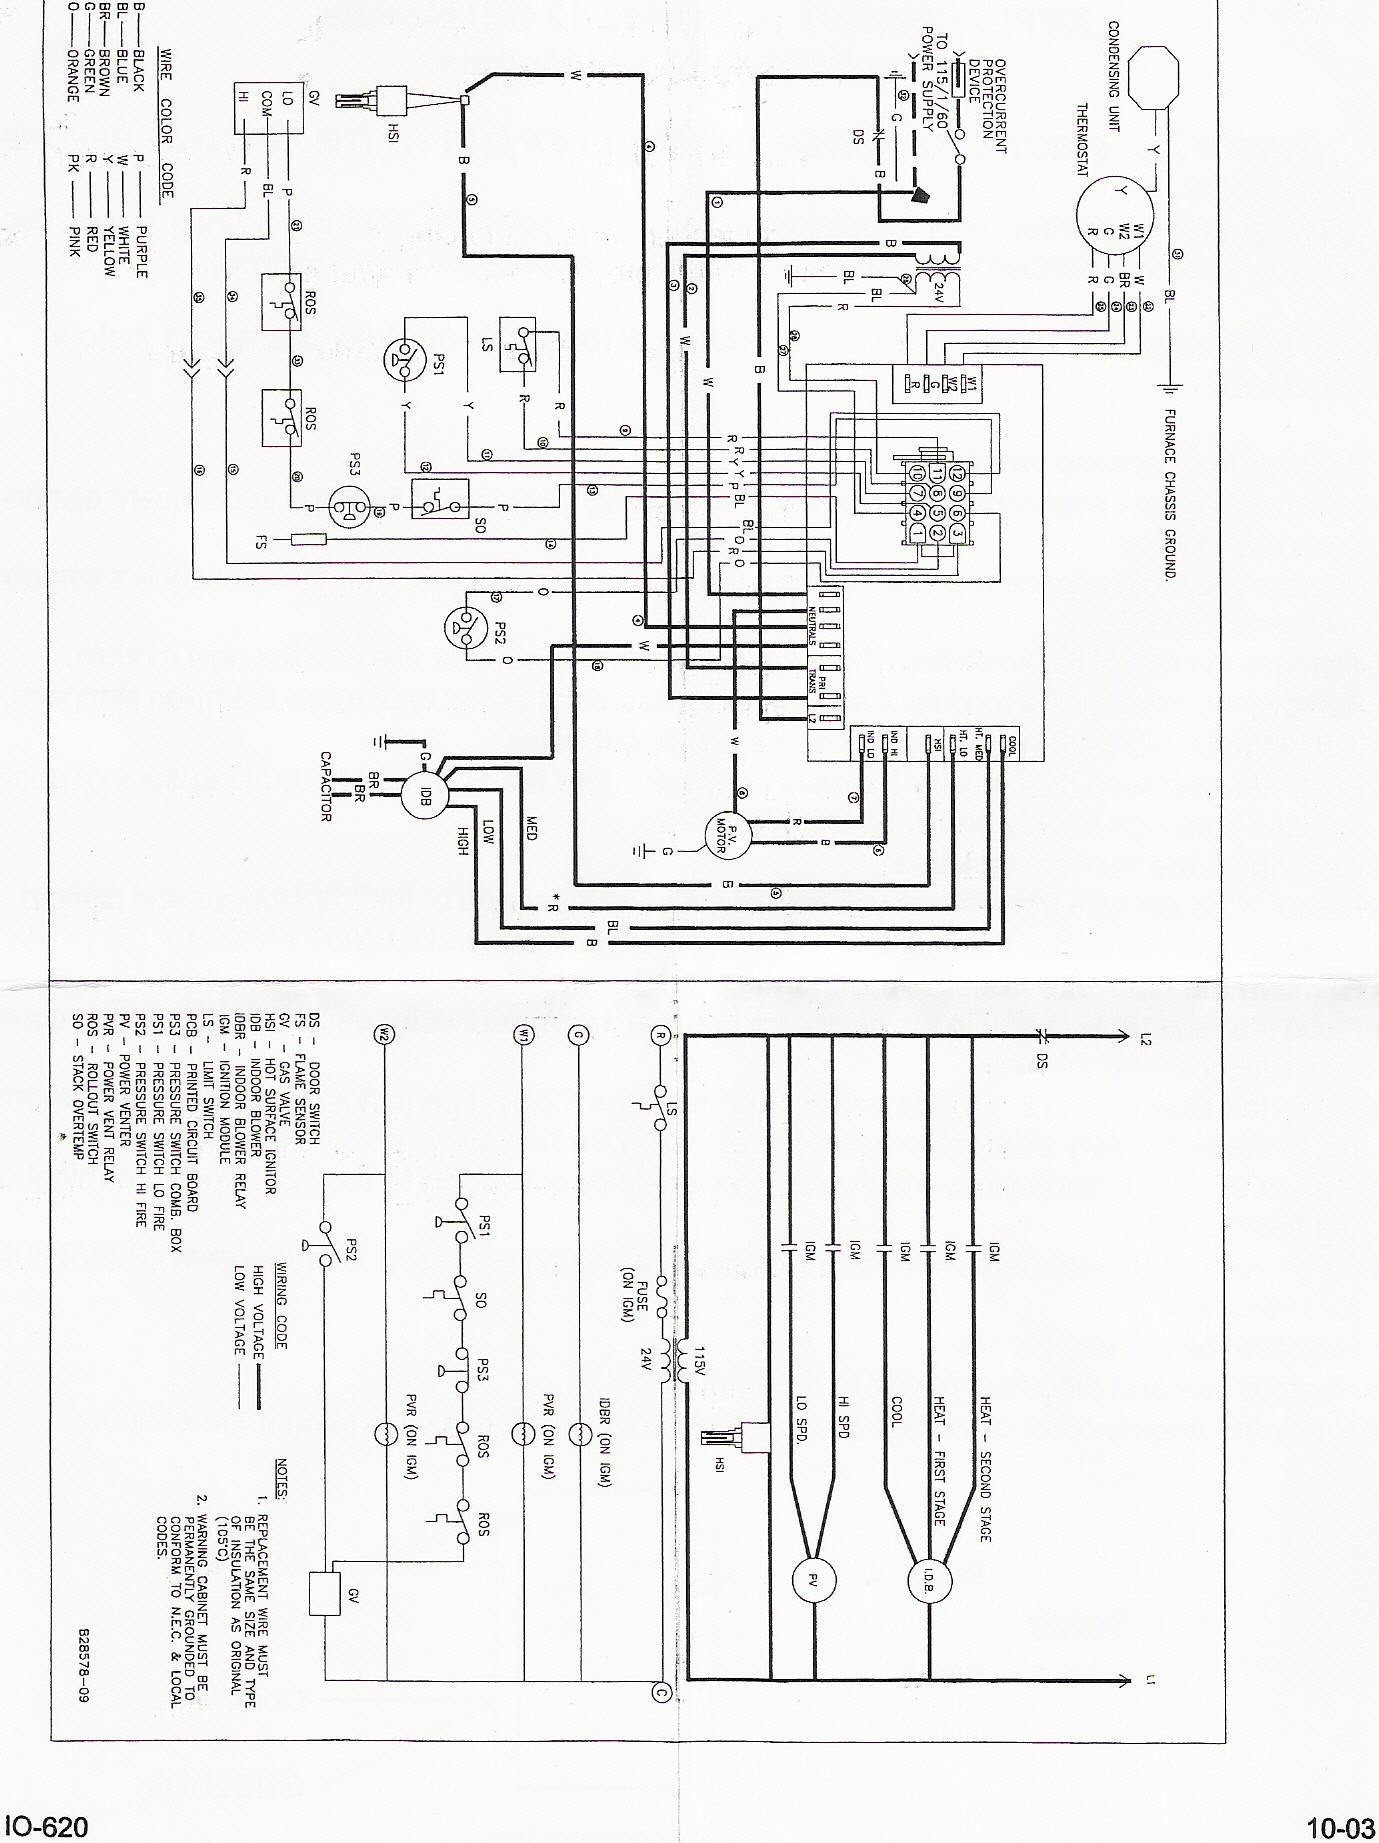 Weathertron Thermostat Wiring - Technical Diagrams on